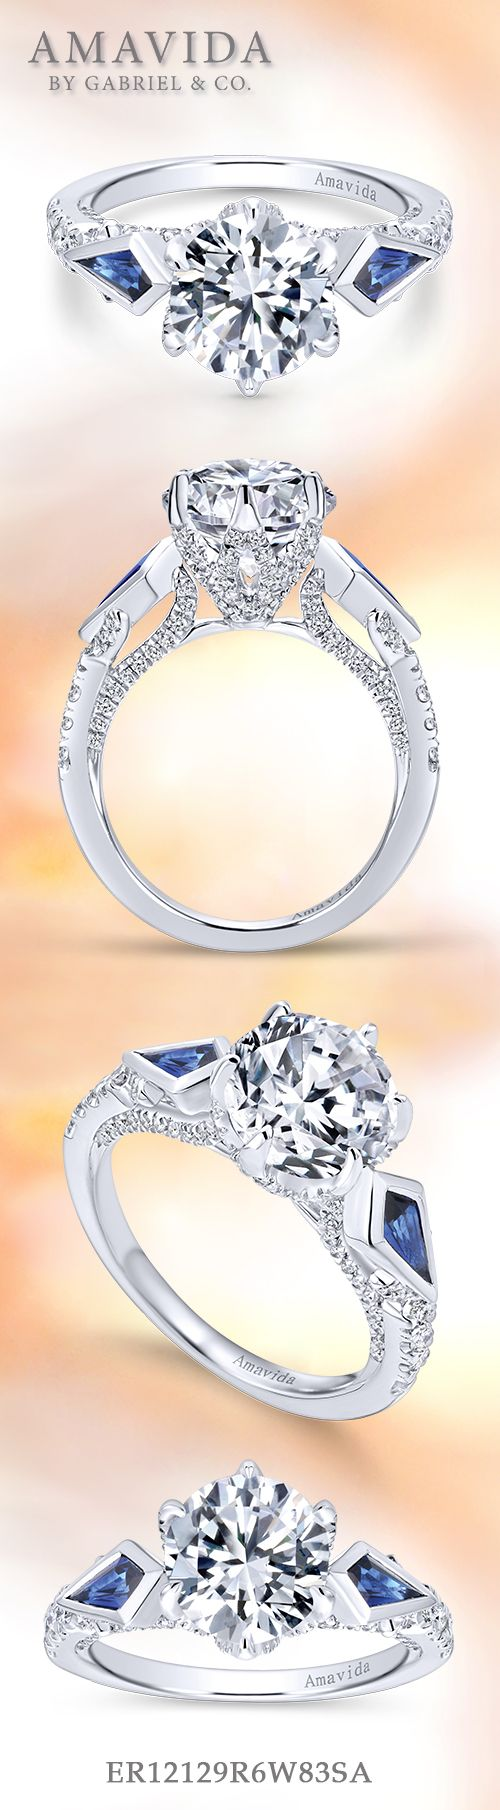 Amavida by Gabriel & Co. - Voted #1 Most Preferred Bridal Brand.   A majestic three (3) stone engagement ring featuring two striking sapphires.